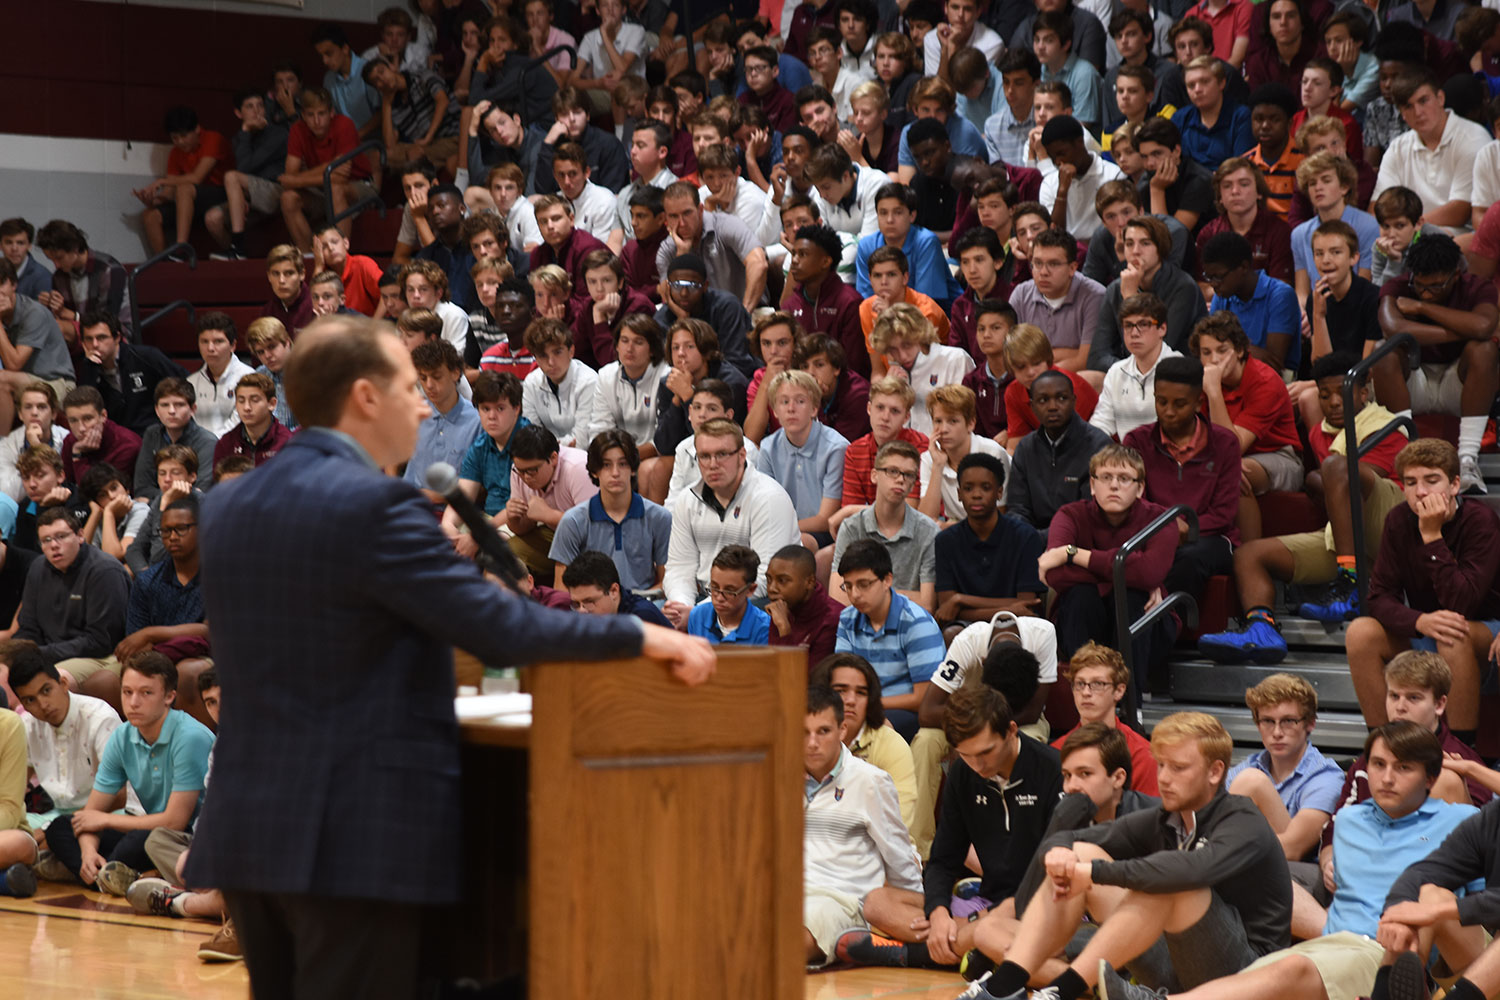 Students+listen+as+president+Corey+Quinn+addresses+them+during+an+all-school+assembly+concerning+the+not+guilty+verdict+in+the+trial+of+a+St.+Louis+police+officer.